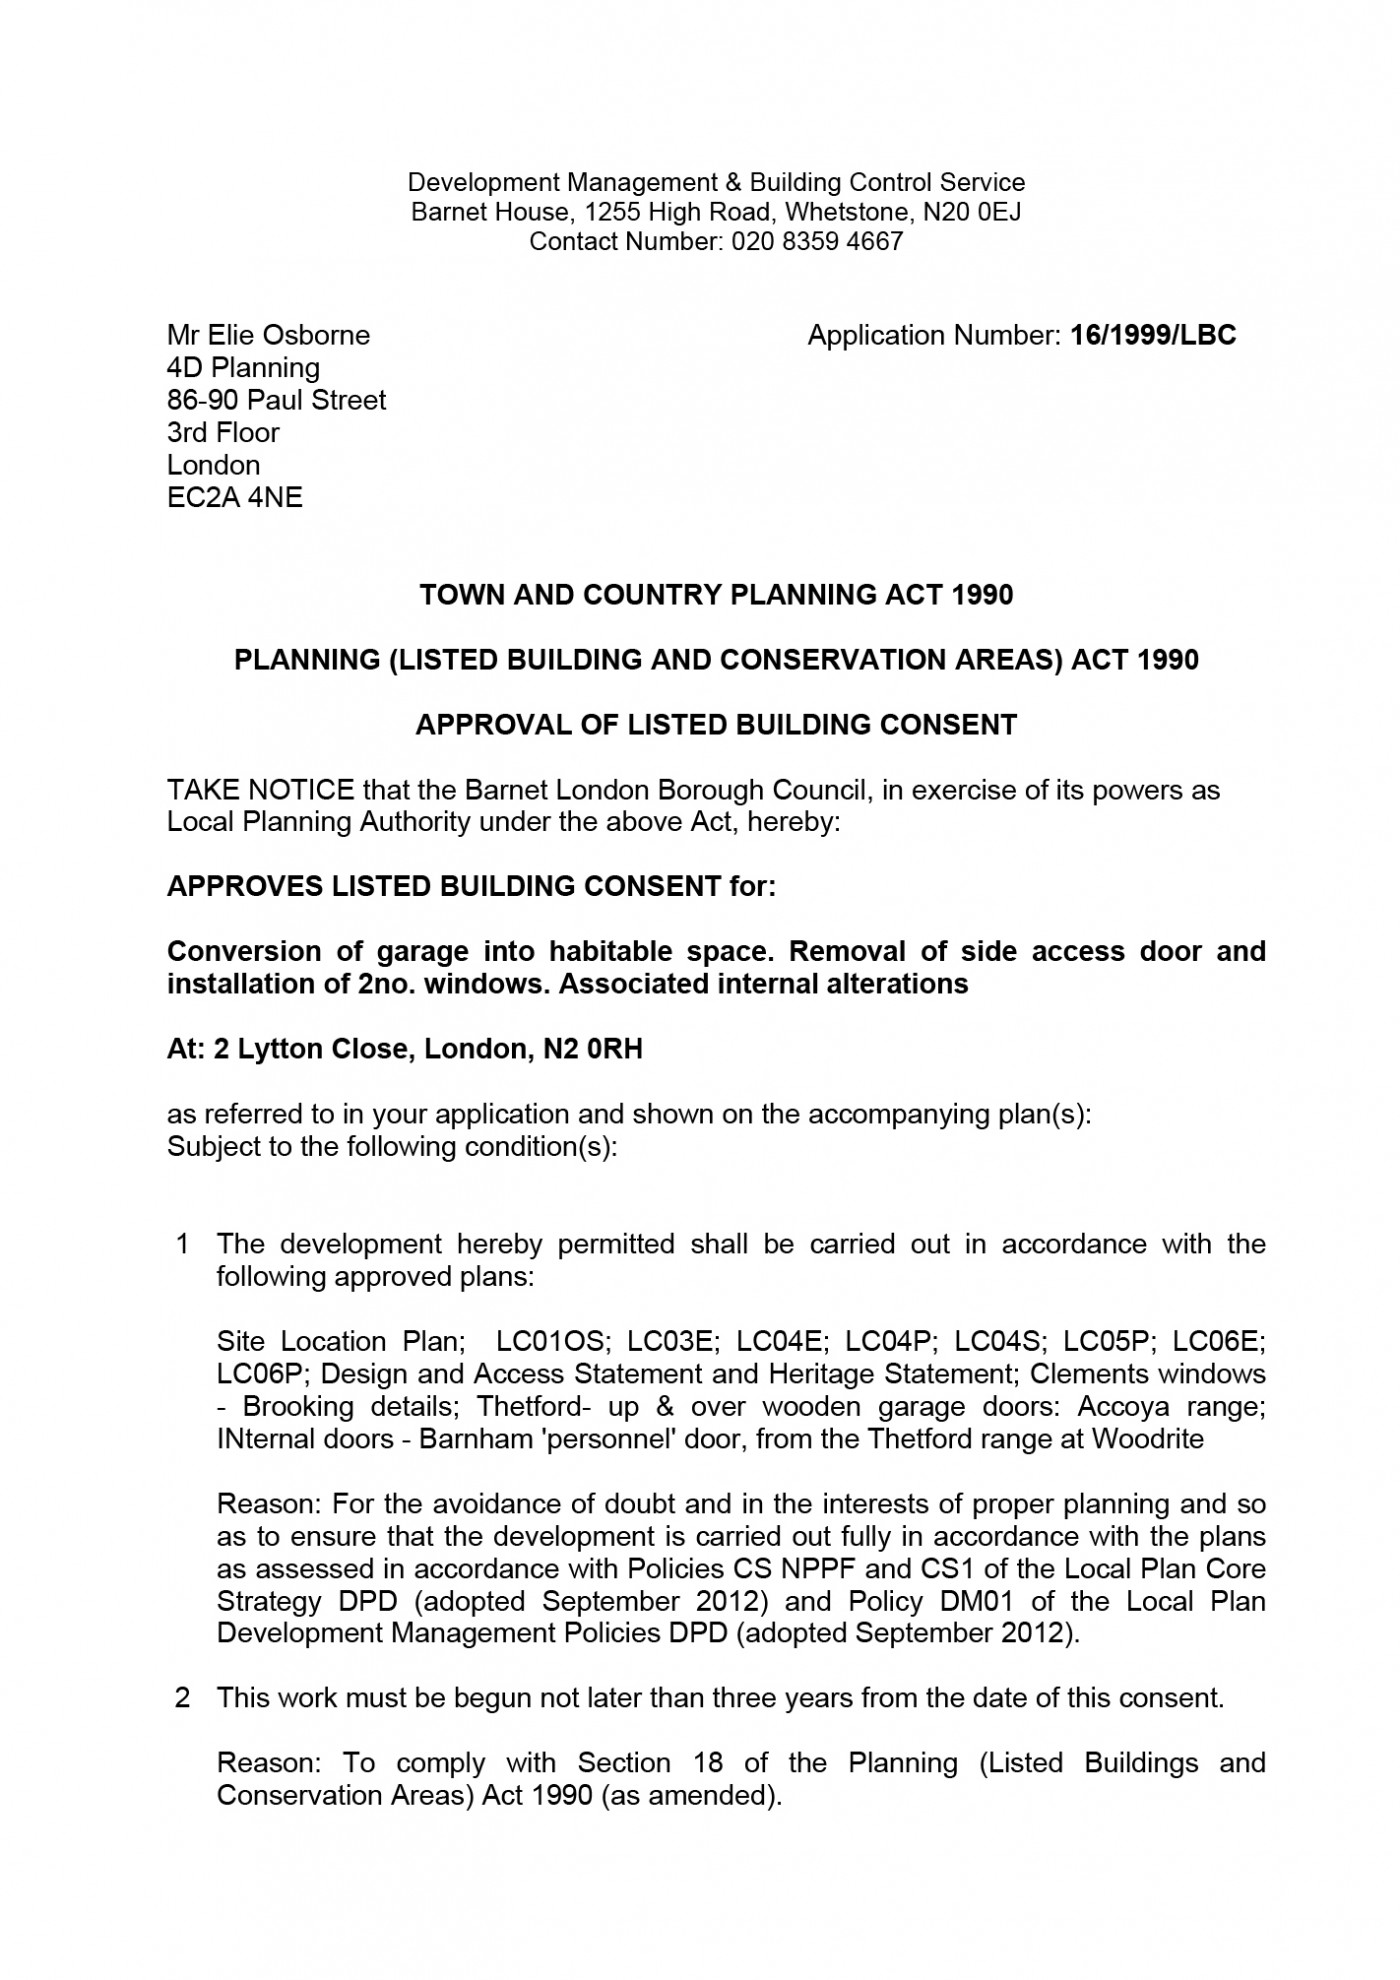 Barnet Council Decision Notice - Granted Planning Permission